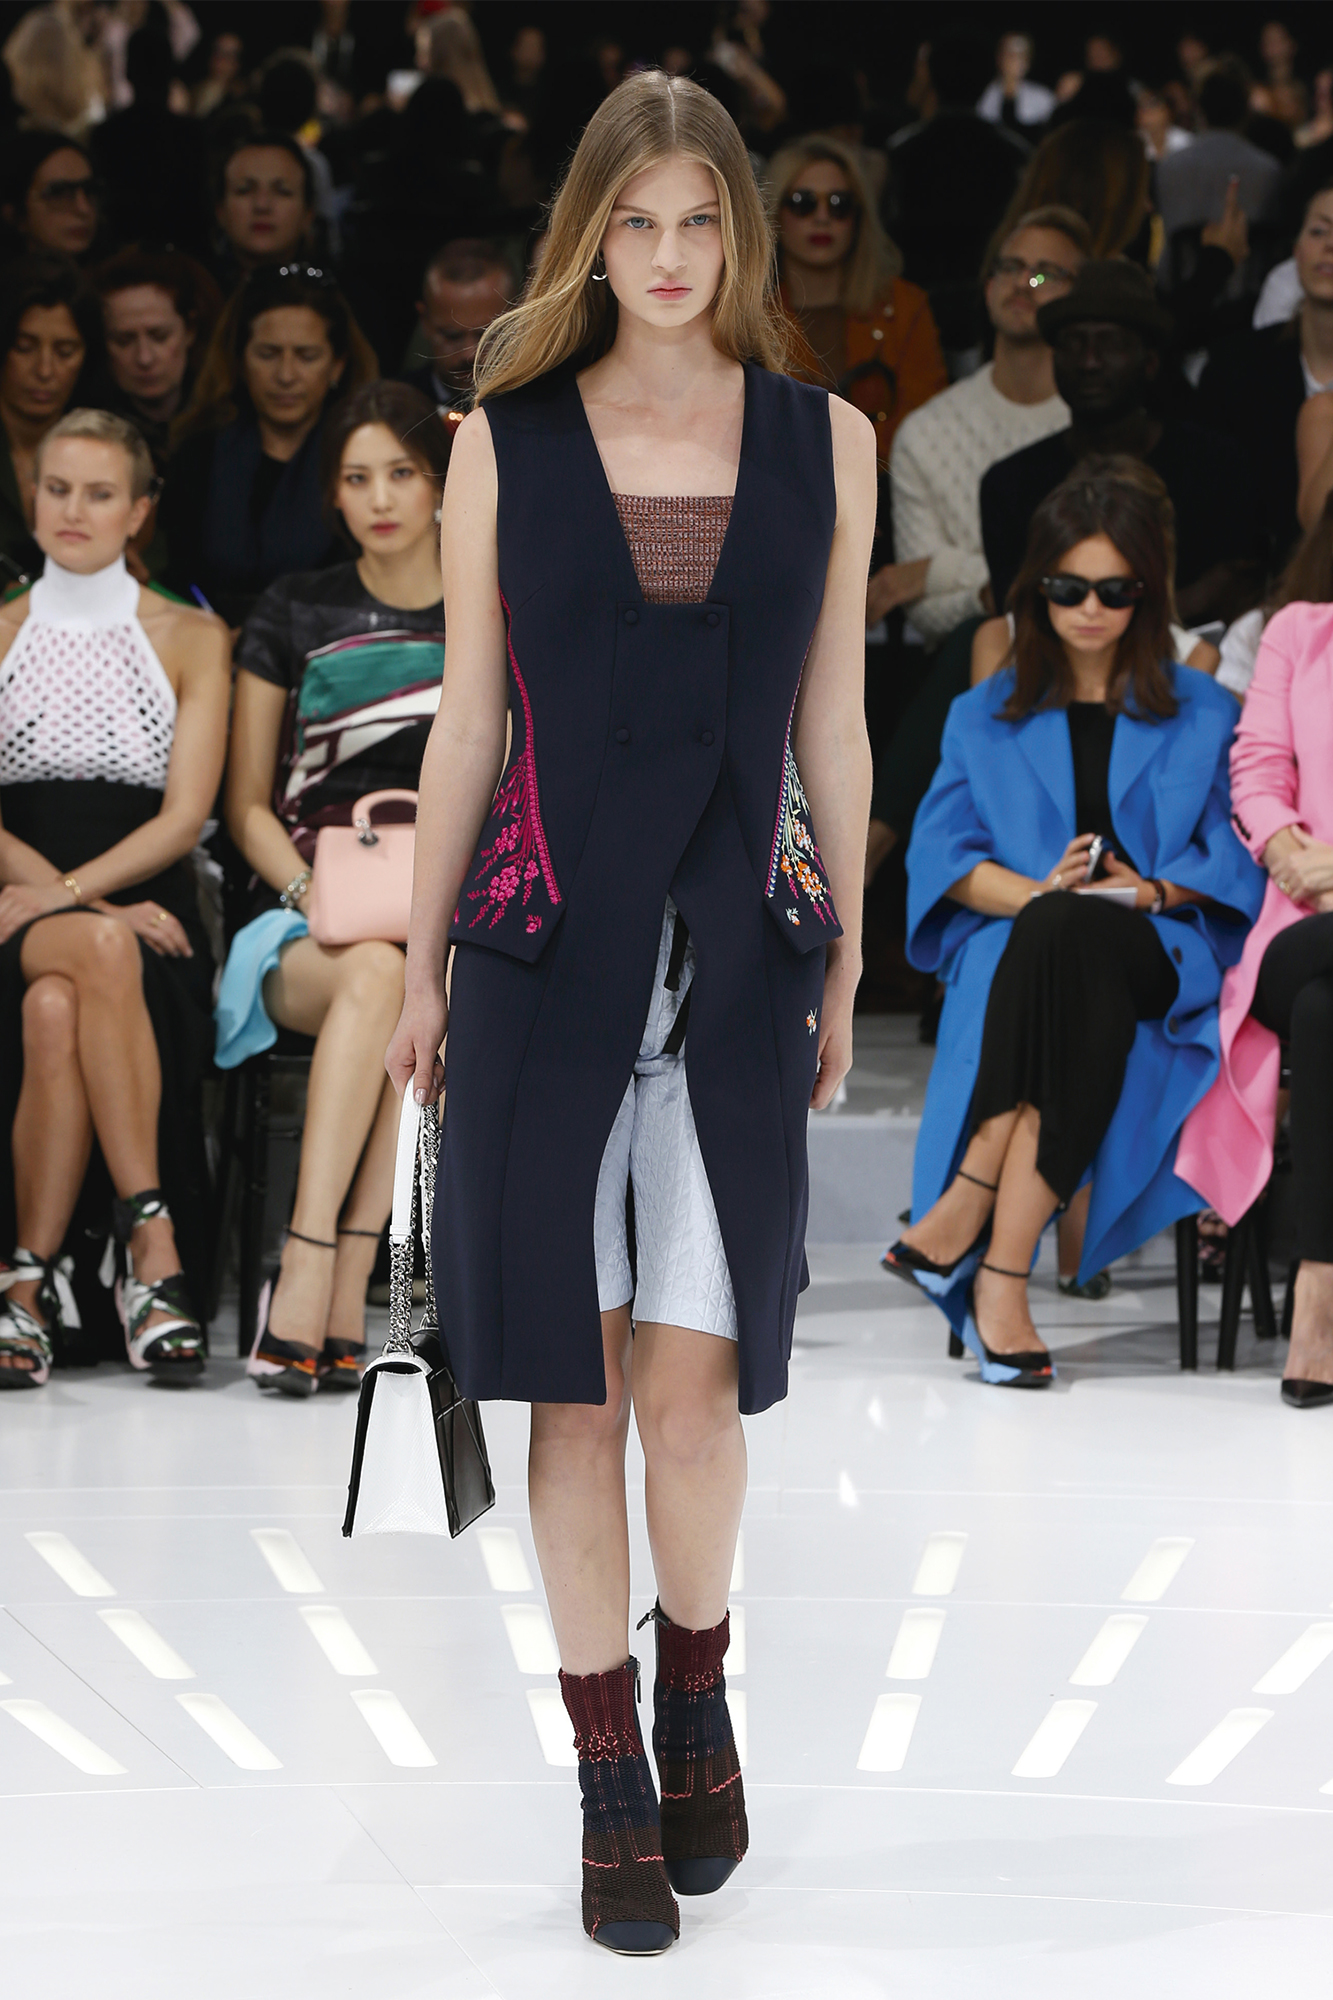 Christian Dior Haute Couture Spring-Summer Ready To Wear Dresses & Accessories Collection 2015-16 (28)